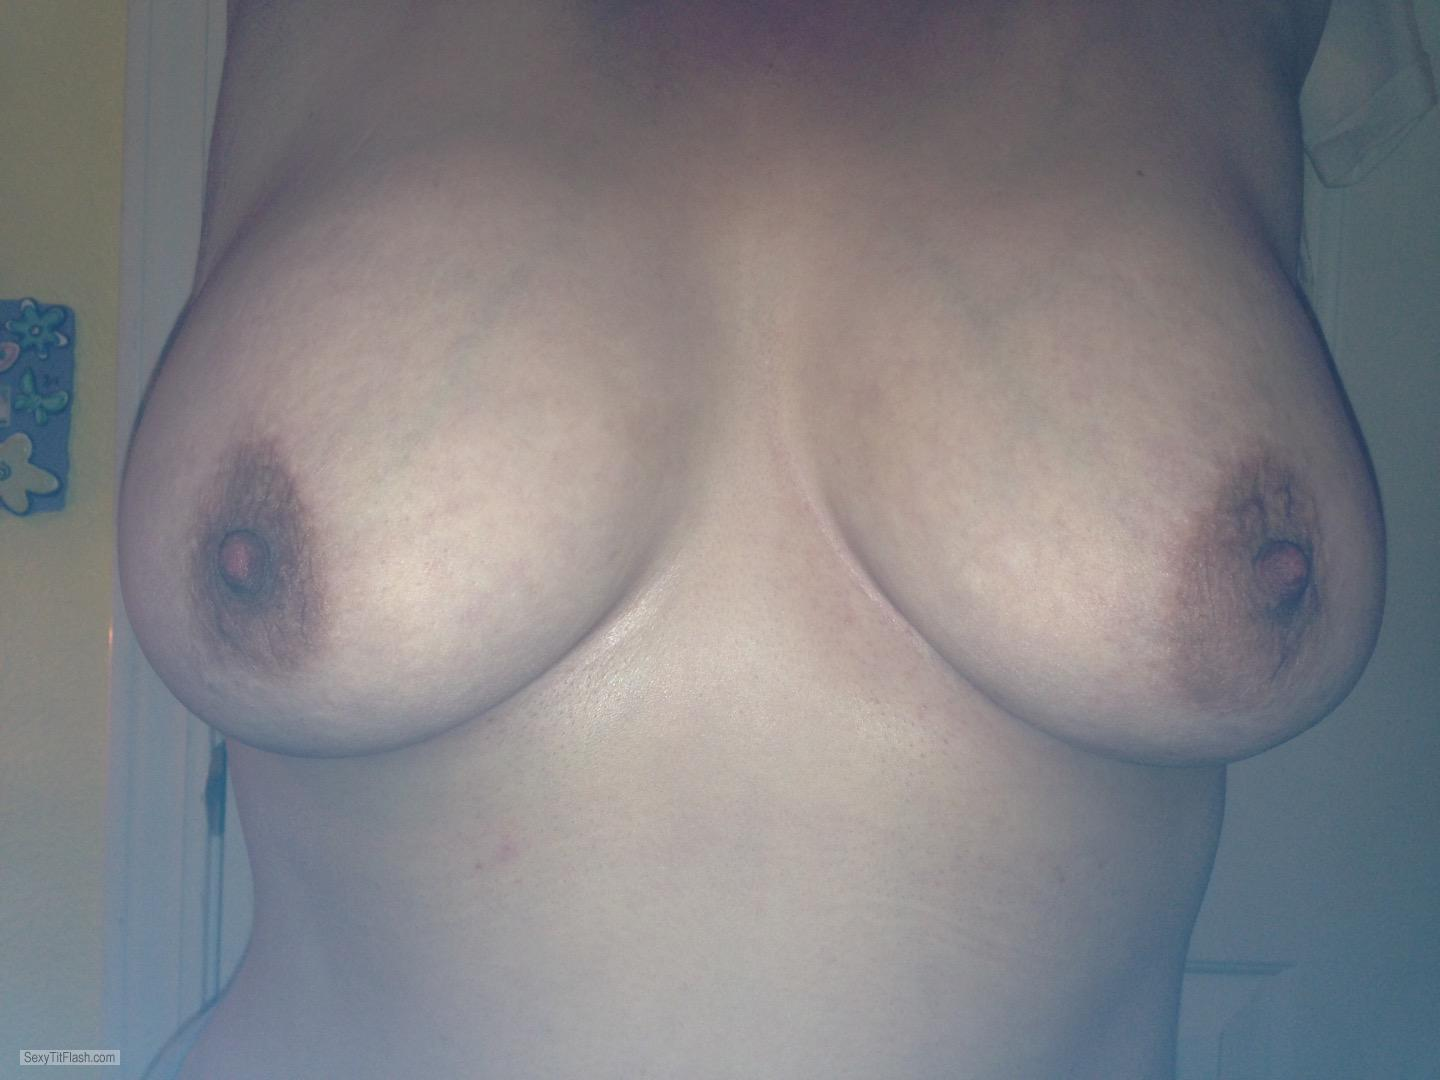 Tit Flash: My Big Tits - My Wife from United Kingdom